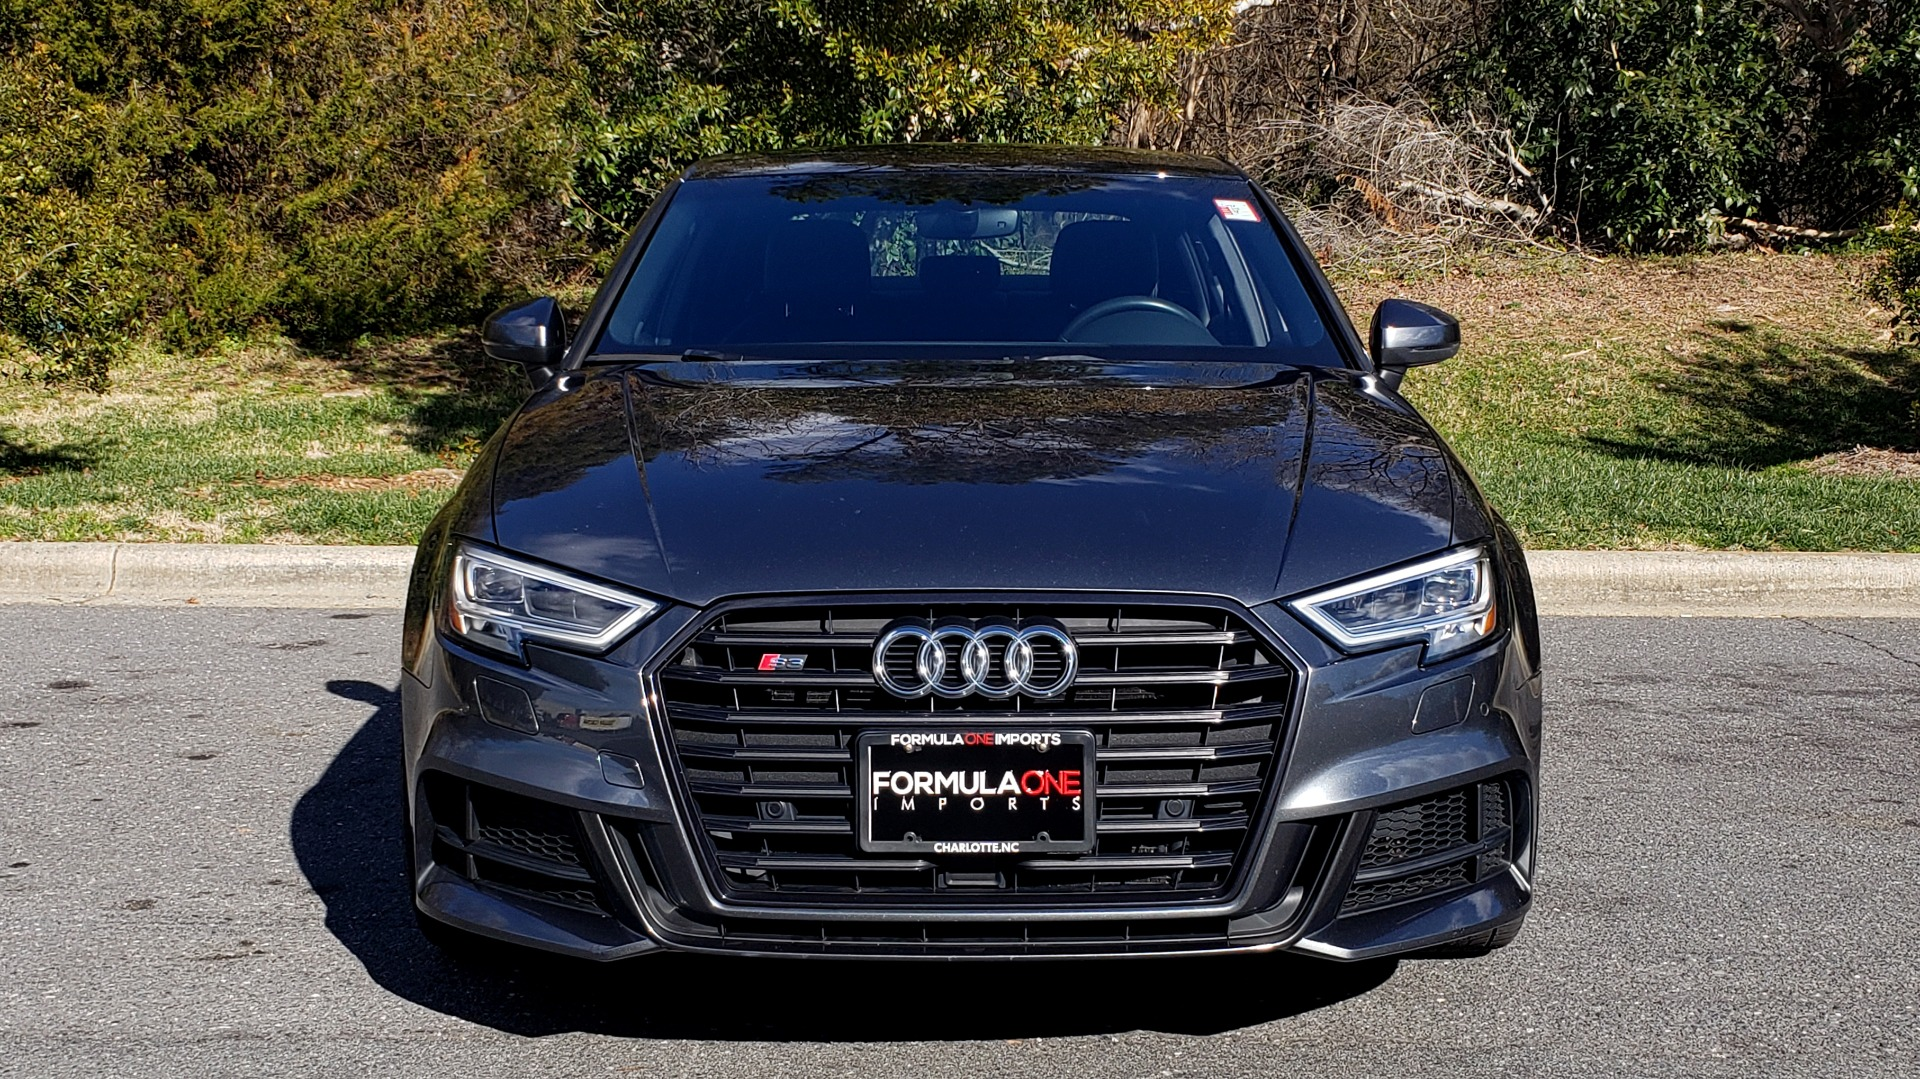 Used 2018 Audi S3 PREMIUM PLUS / TECH / NAV / BLACK OPTIC / S-SPORT / REARVIEW for sale $32,995 at Formula Imports in Charlotte NC 28227 17